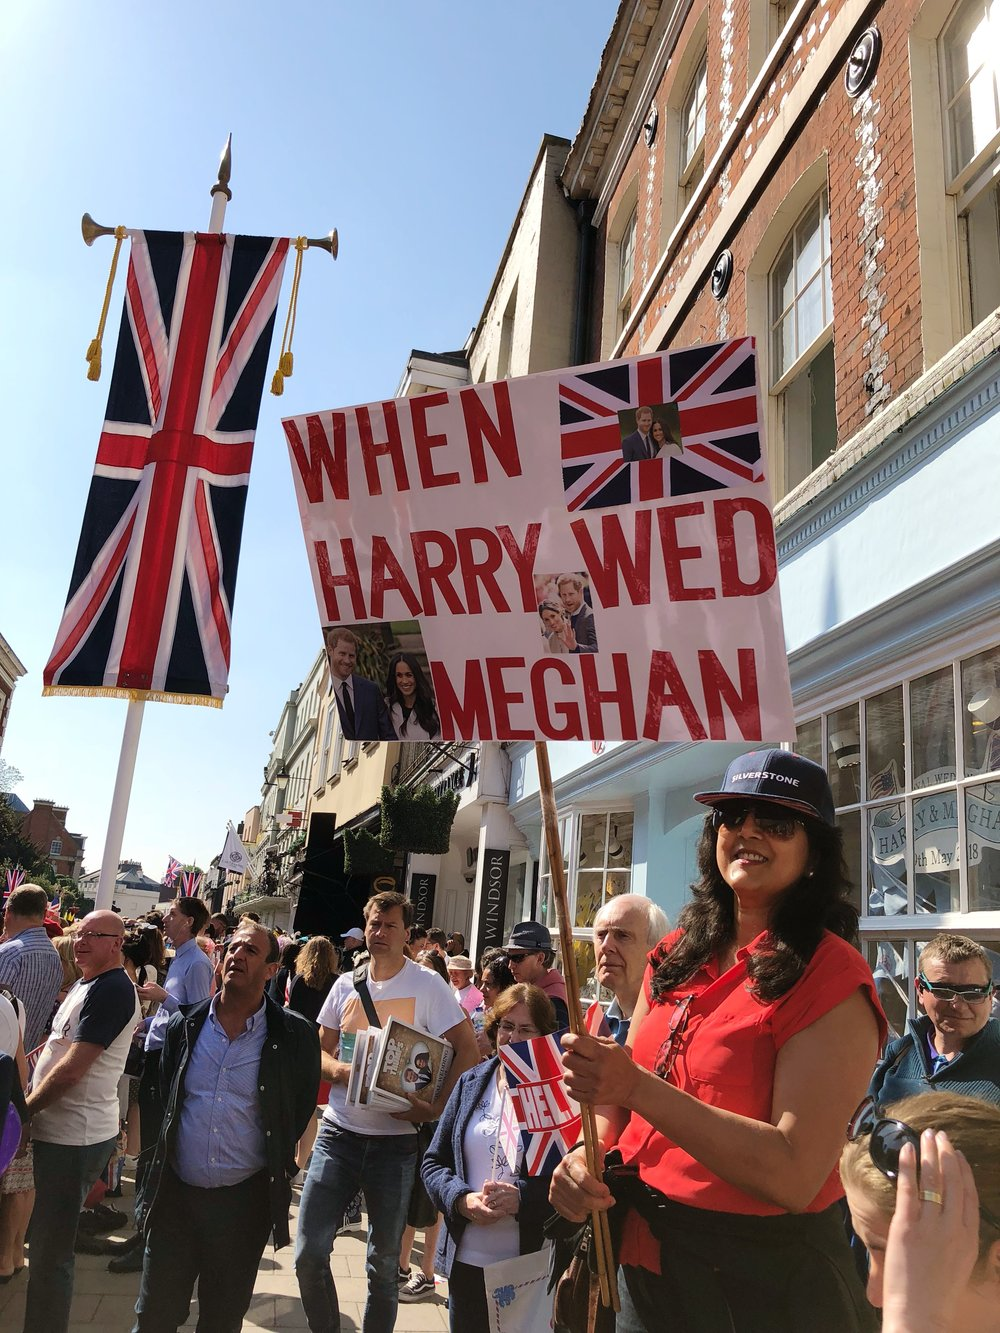 Windsor, UK, Royal Wedding, Harry and Meghan